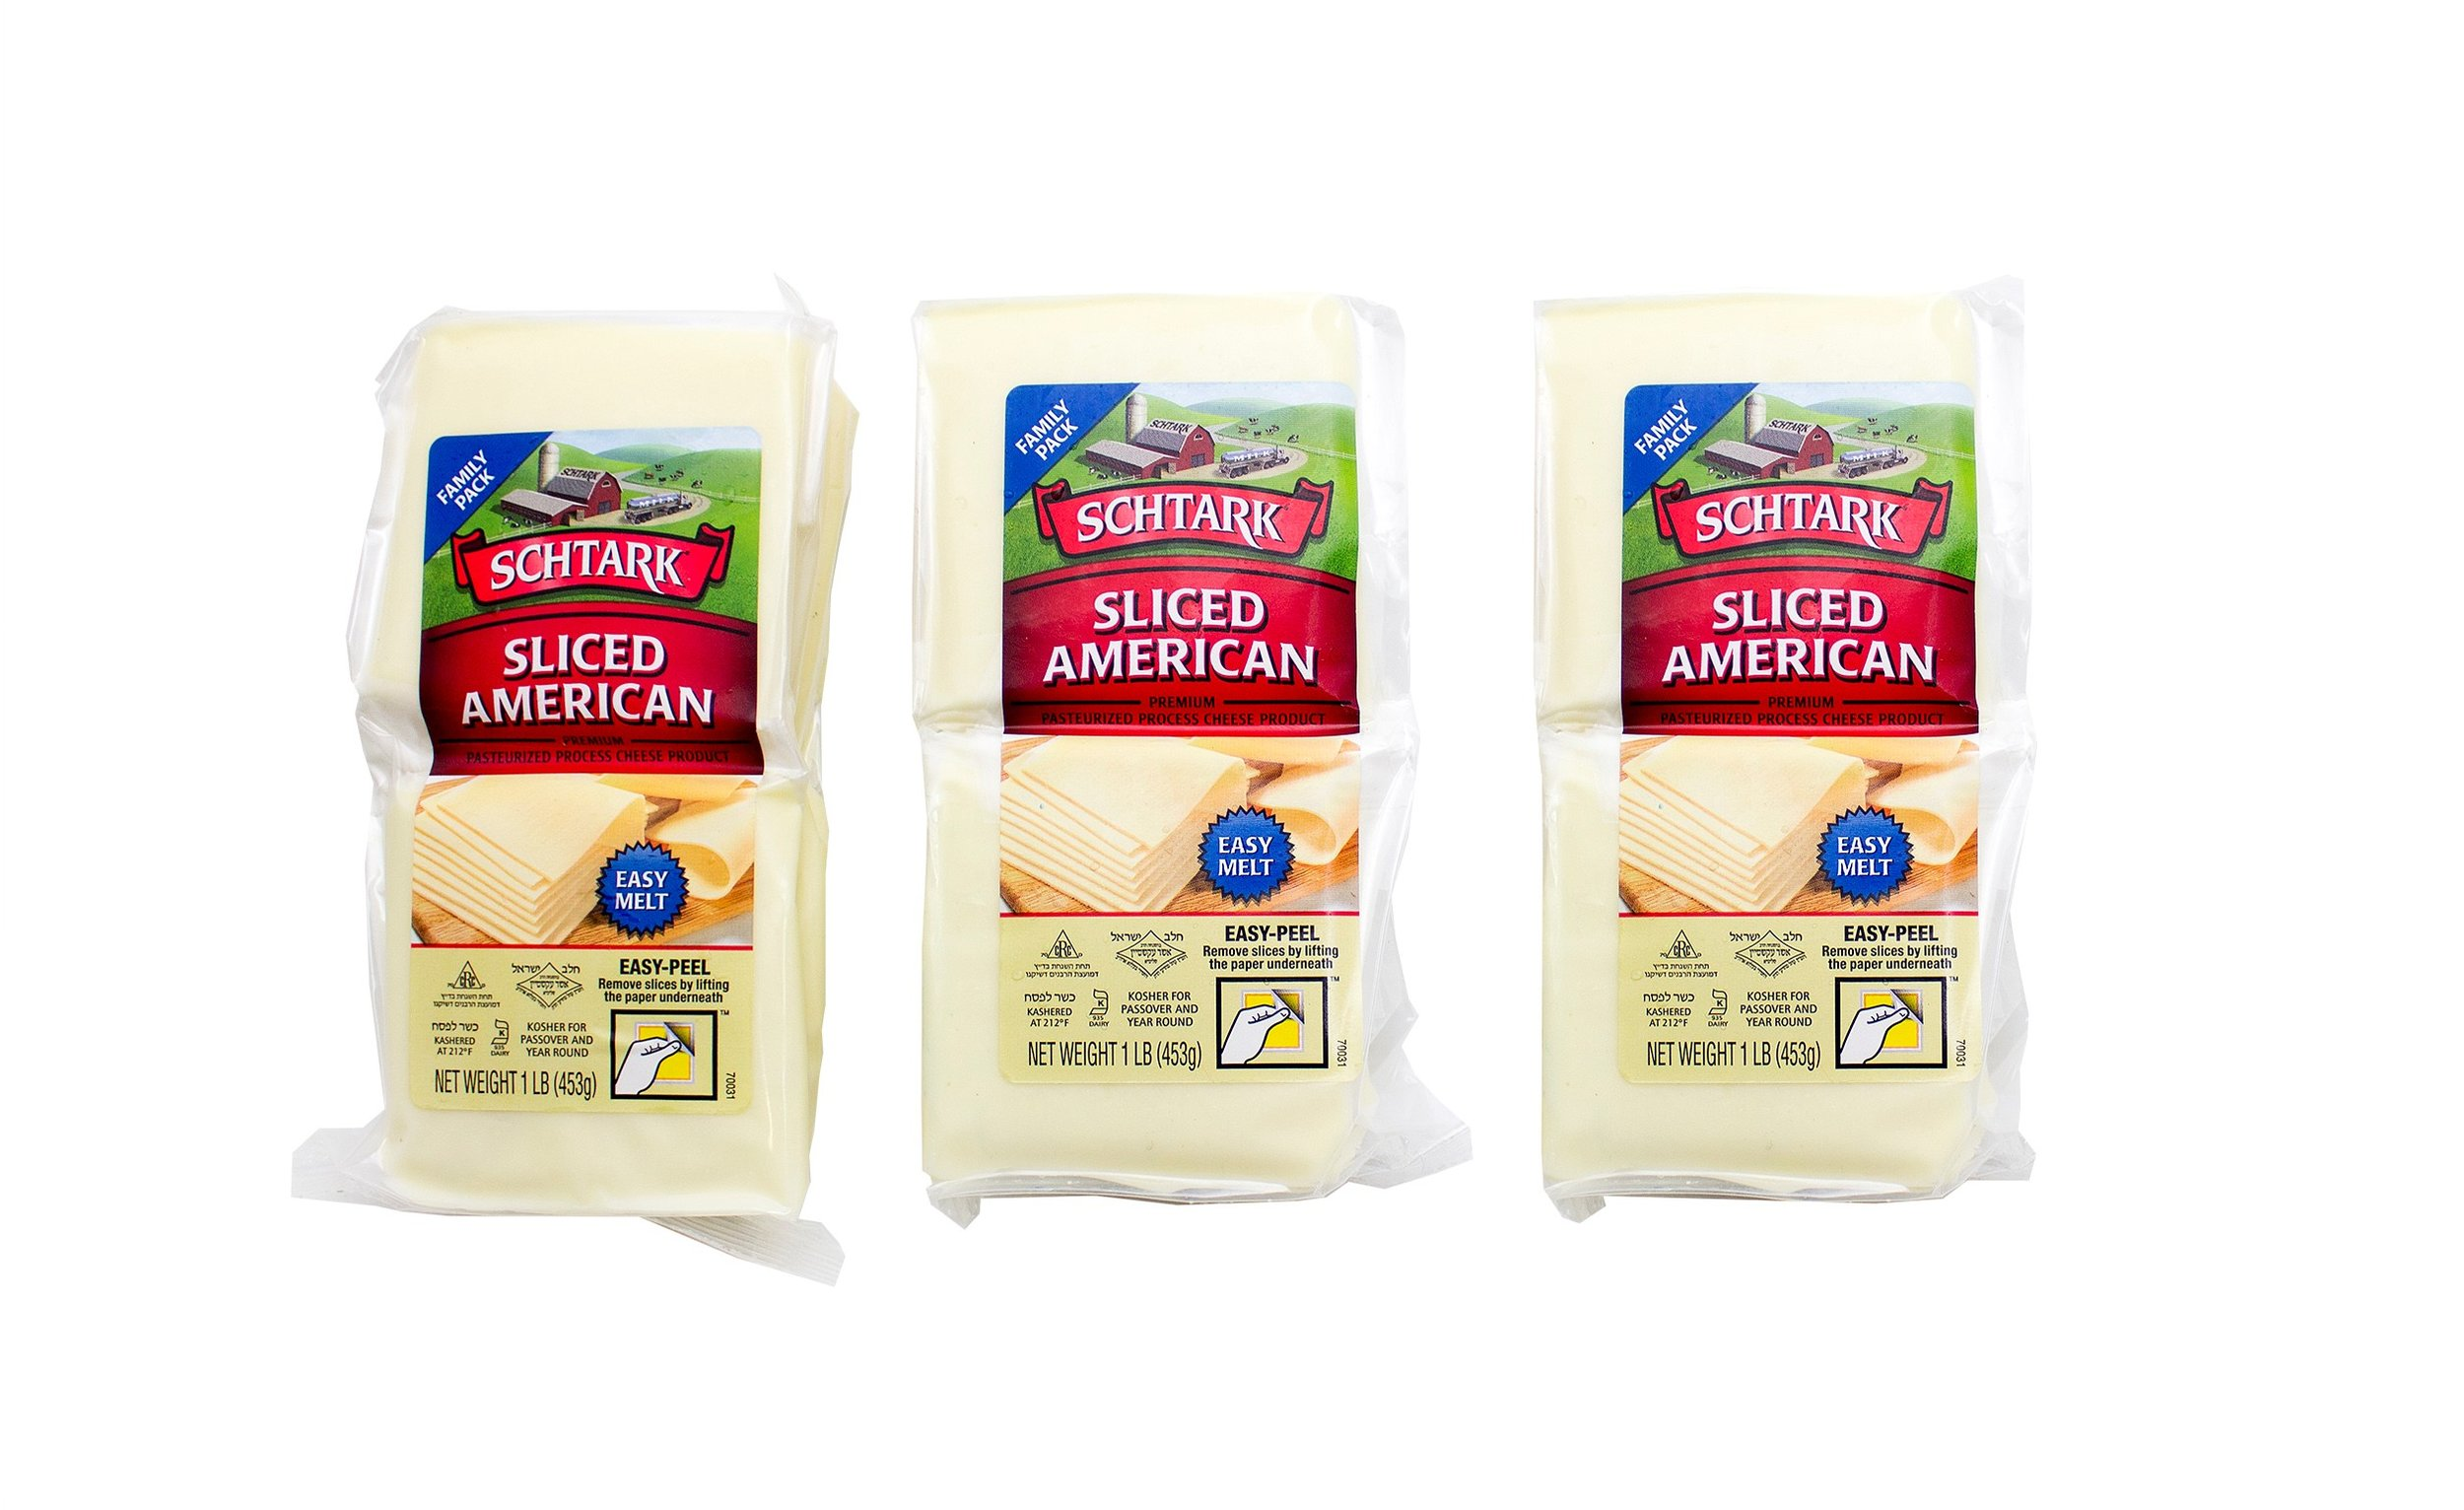 American Slices (1 lb. each, 3 pack)